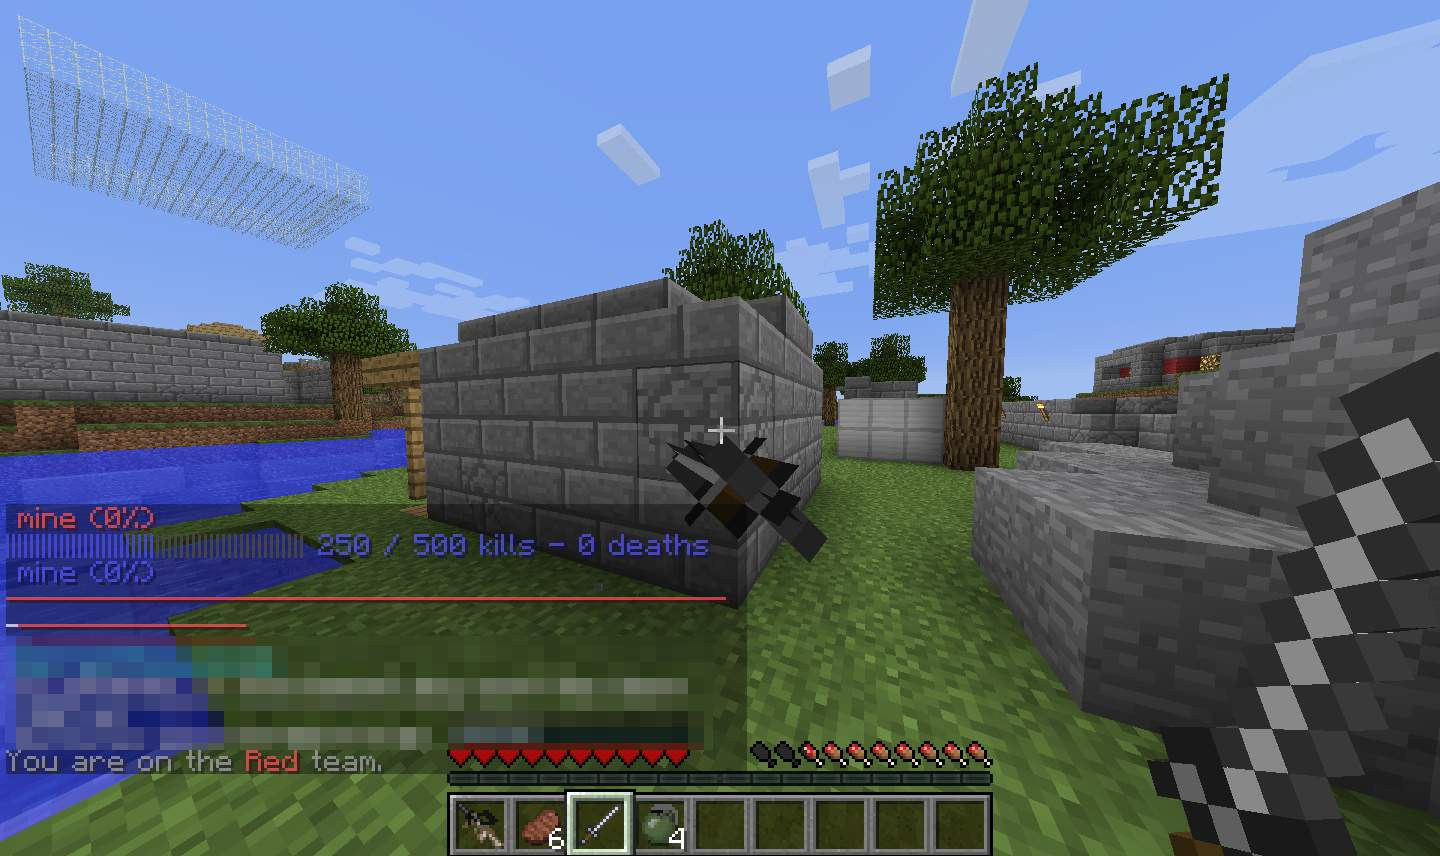 teamdeathmatch-minecraft-headshot-server-grenade-014